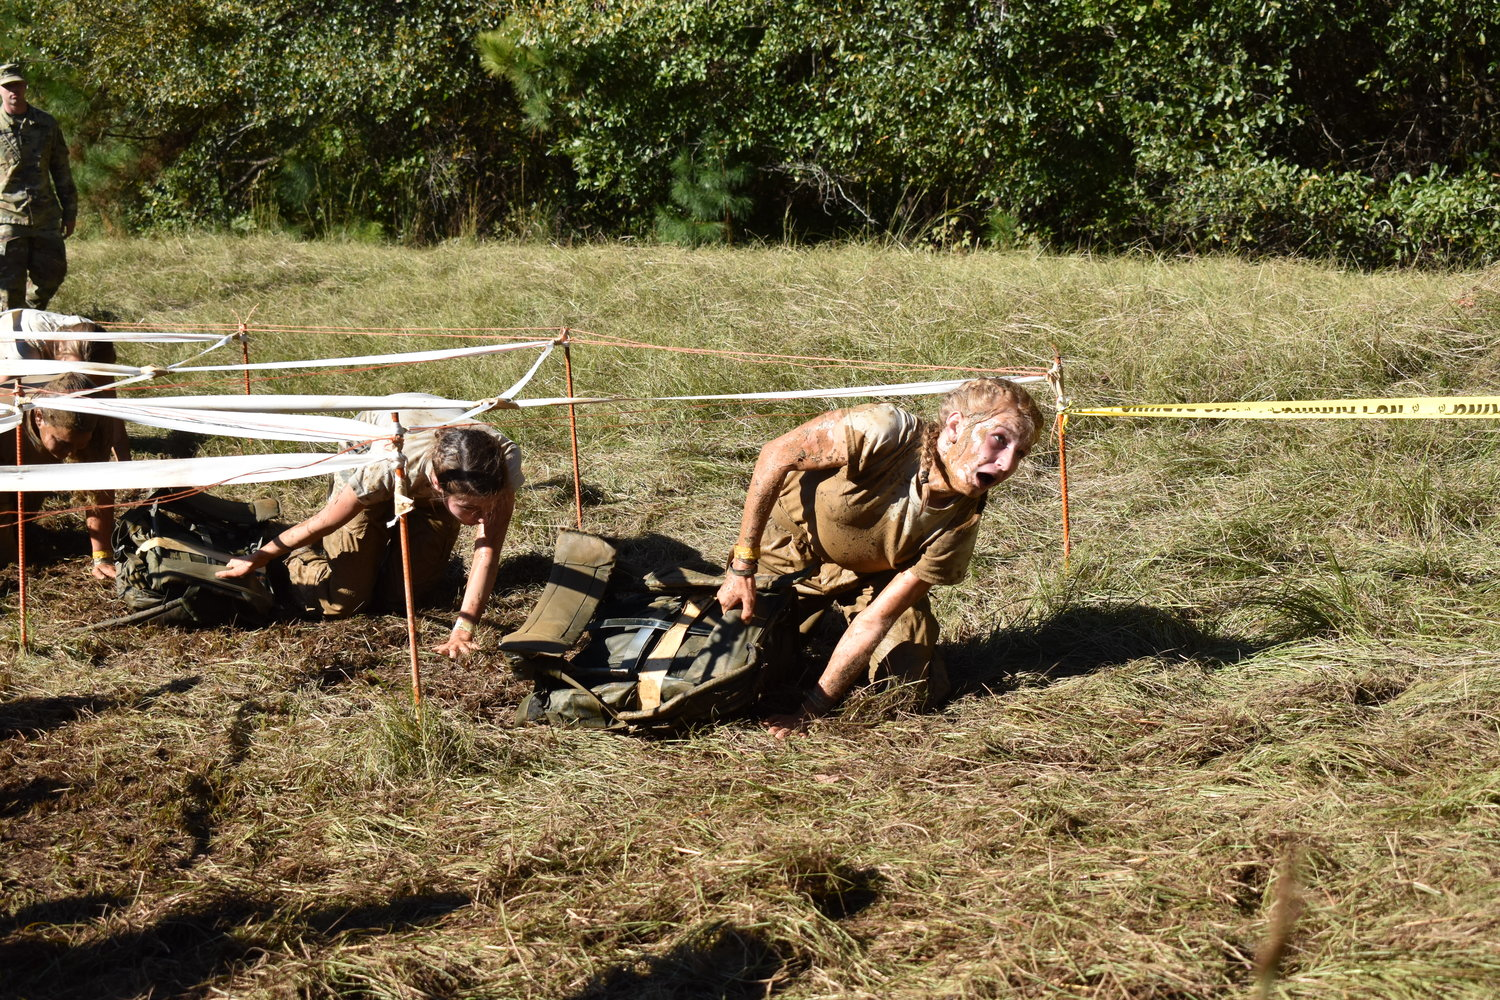 Adairsville High female Raider Megan Wimpy comes out of the low crawl at the end of the Cross Country Rescue event during Saturday's National Raider Championships in Molena.